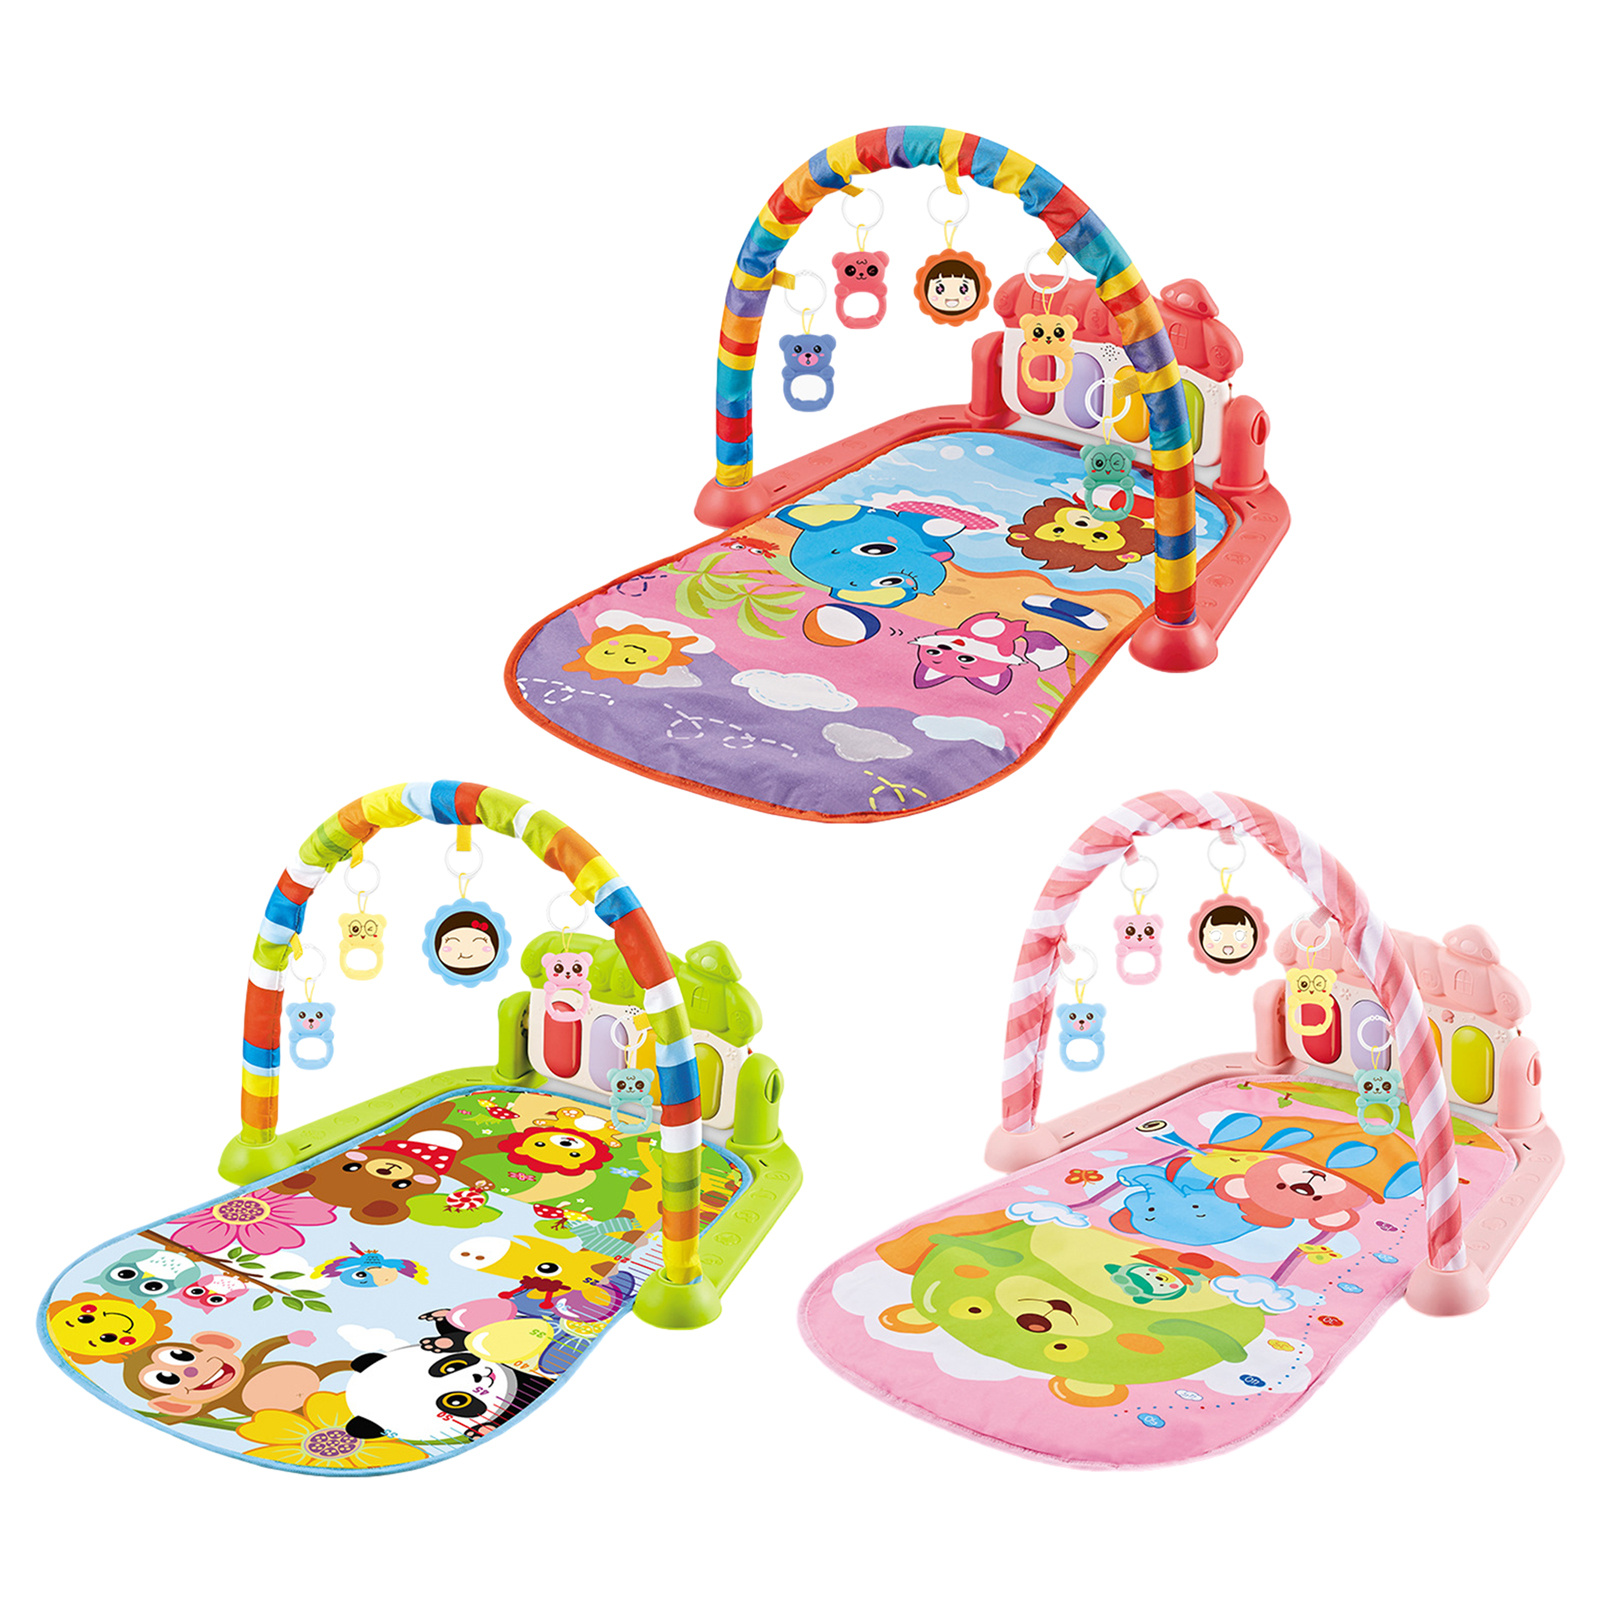 Musical Baby Play Mat Interesting Play Piano Activity Gym With Hanging Toys For Children 0-3 Years